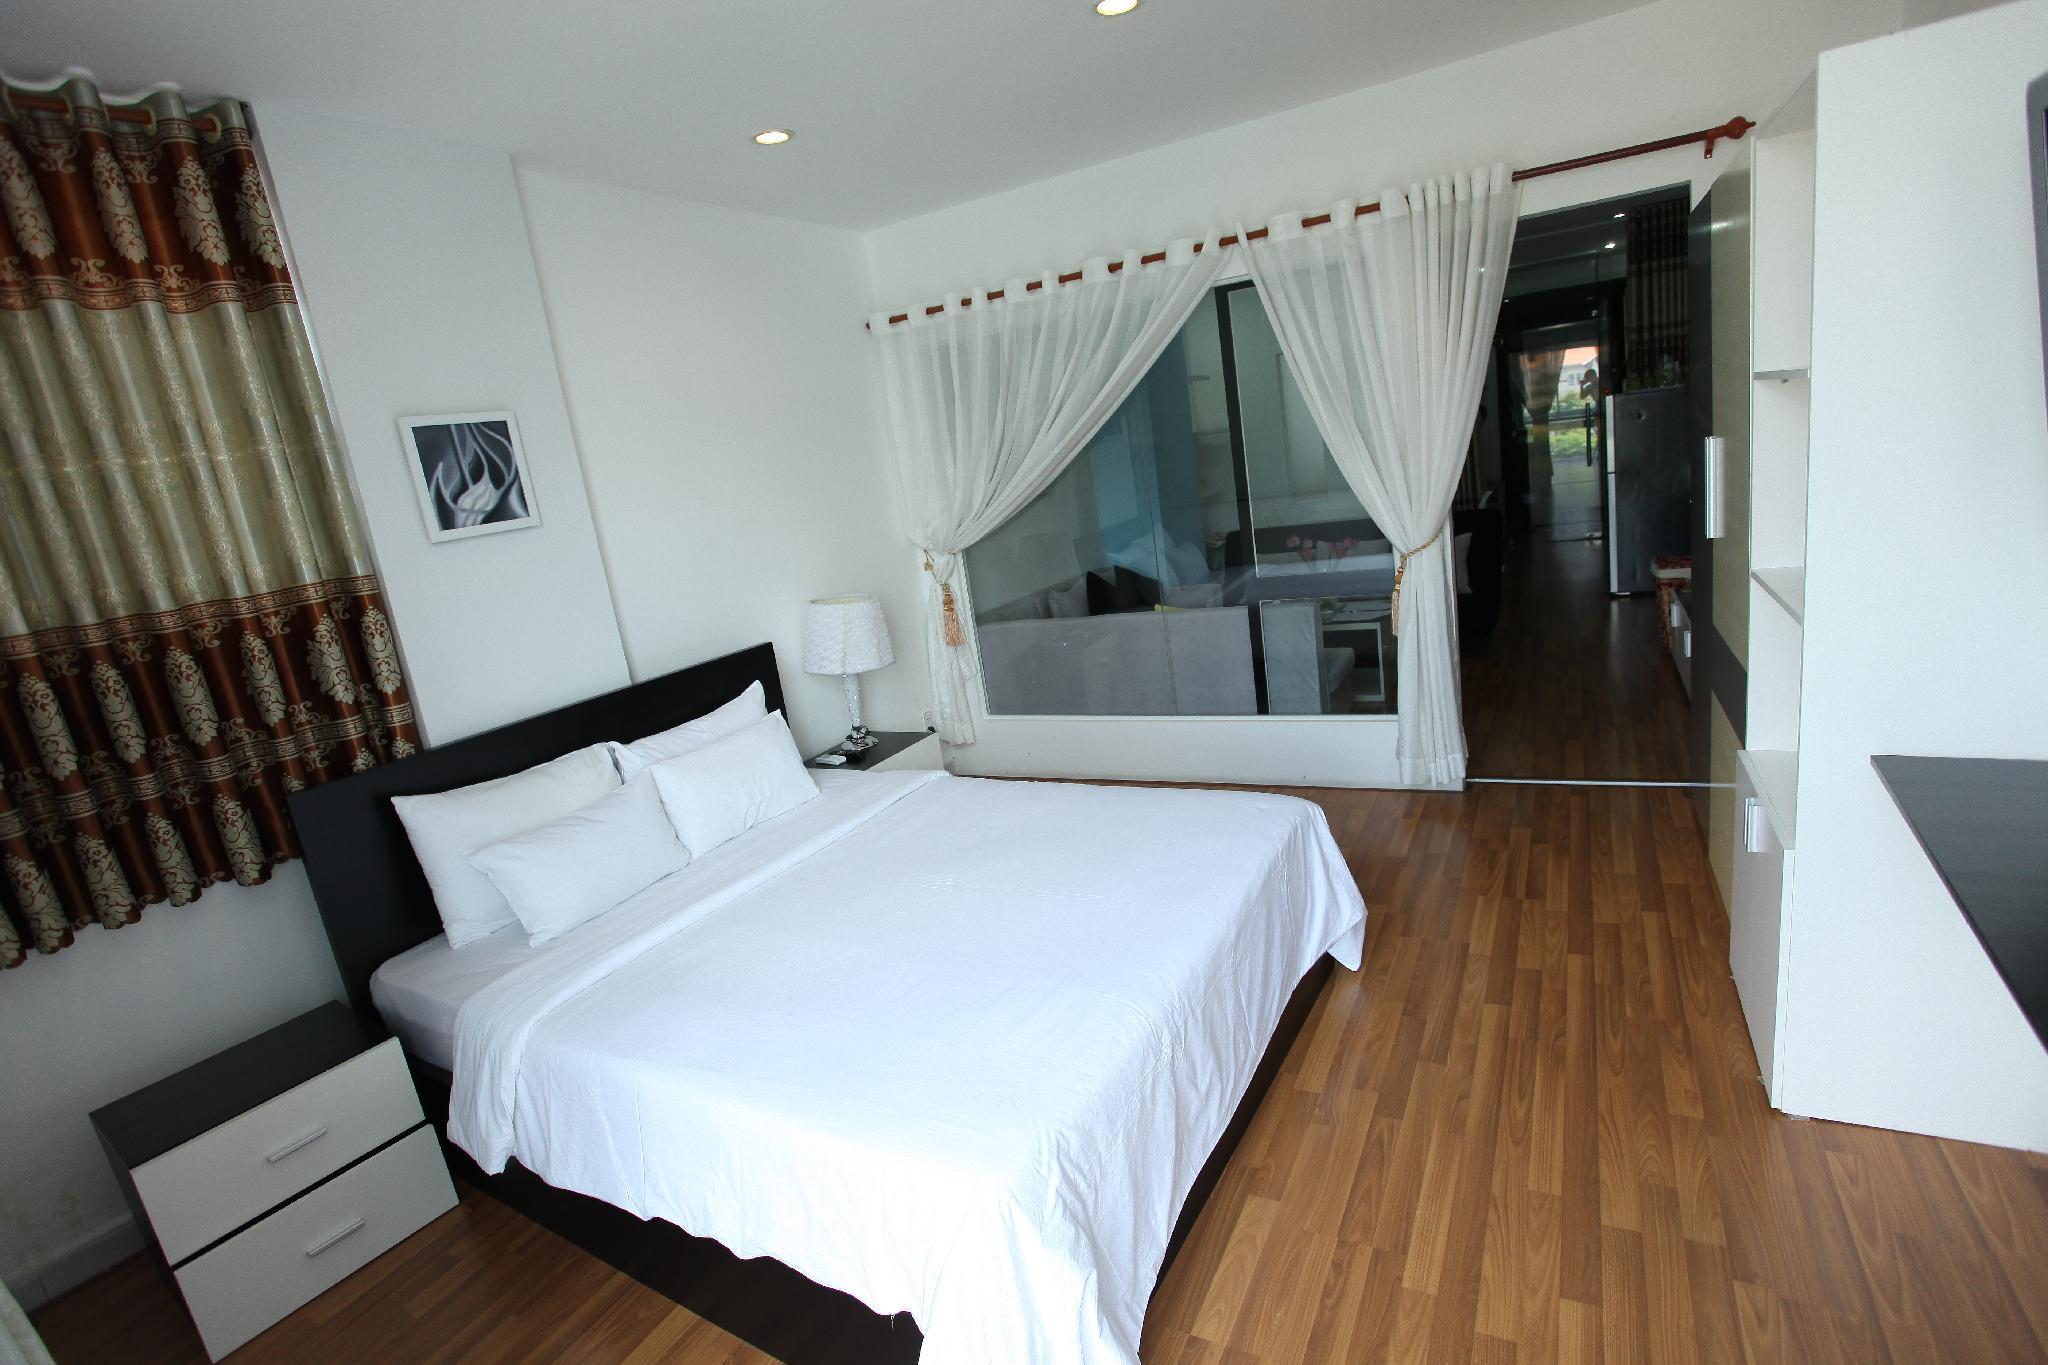 Apartment Stay 4 Adults Near Ben Thanh Market